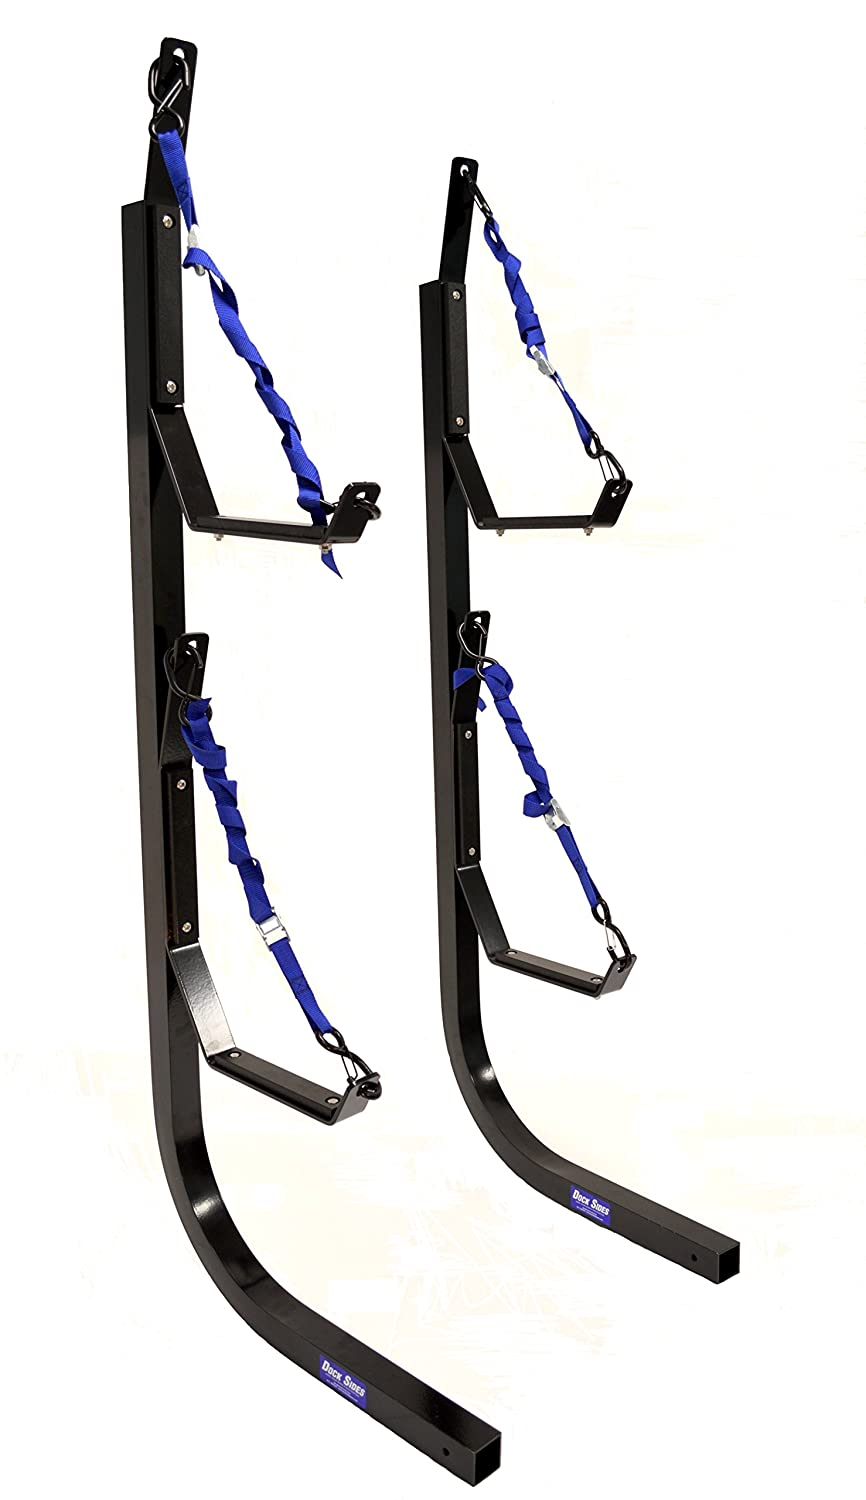 Amazon.com: Dock lados Vertical Kayak Rack: Sports & Outdoors